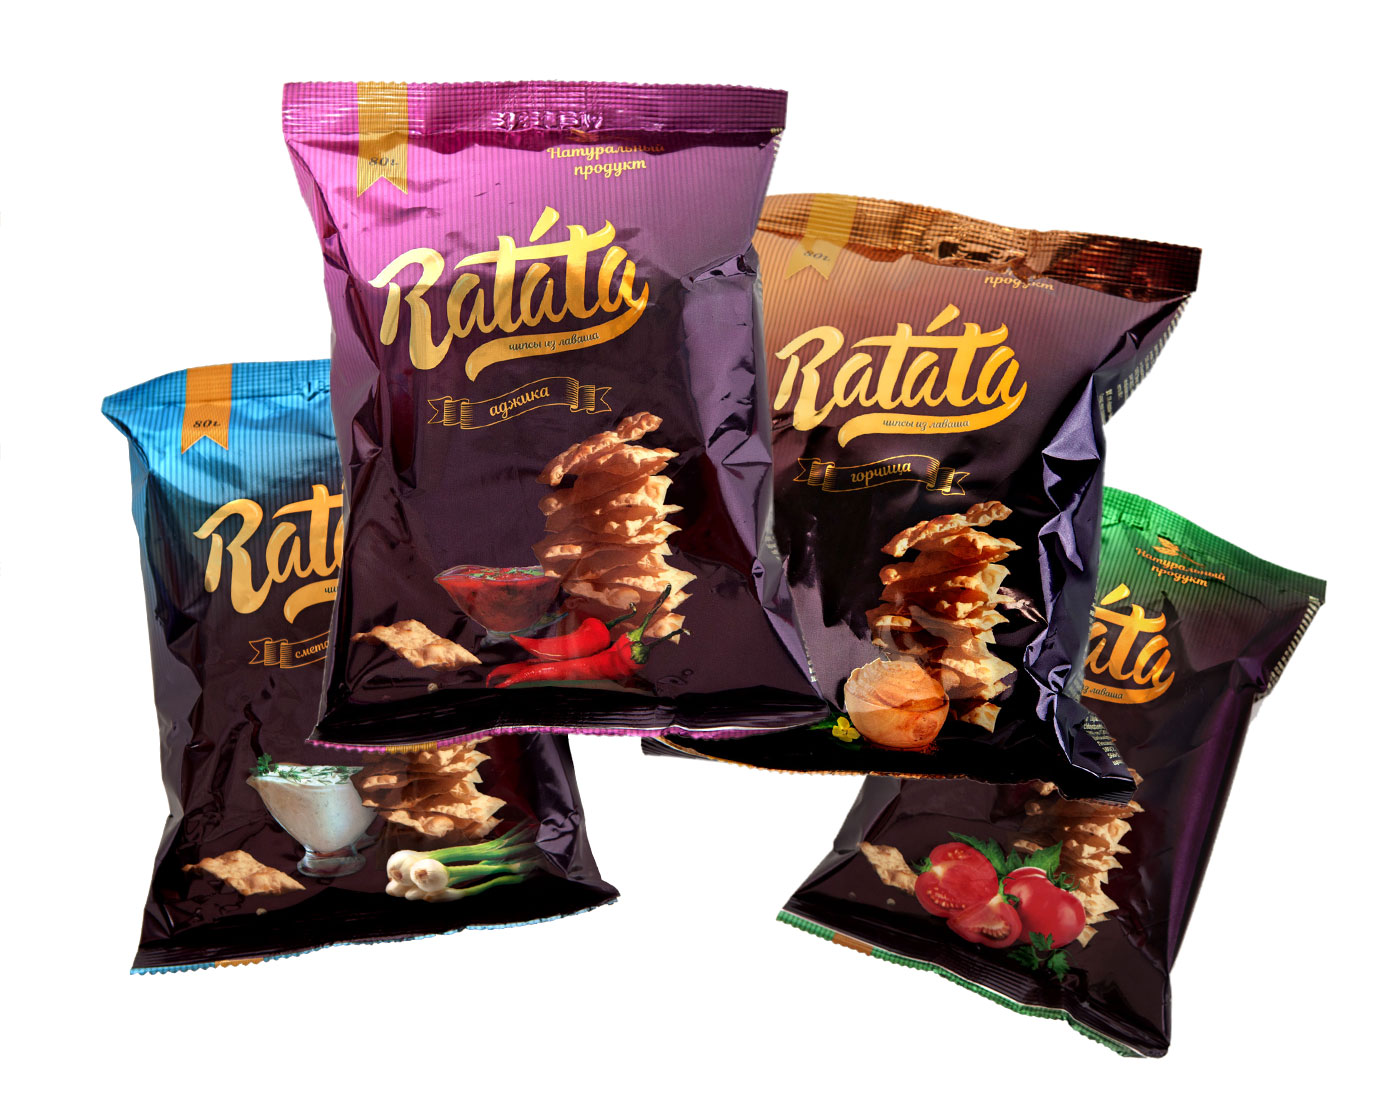 Studio photography ng Ratat 's crisps